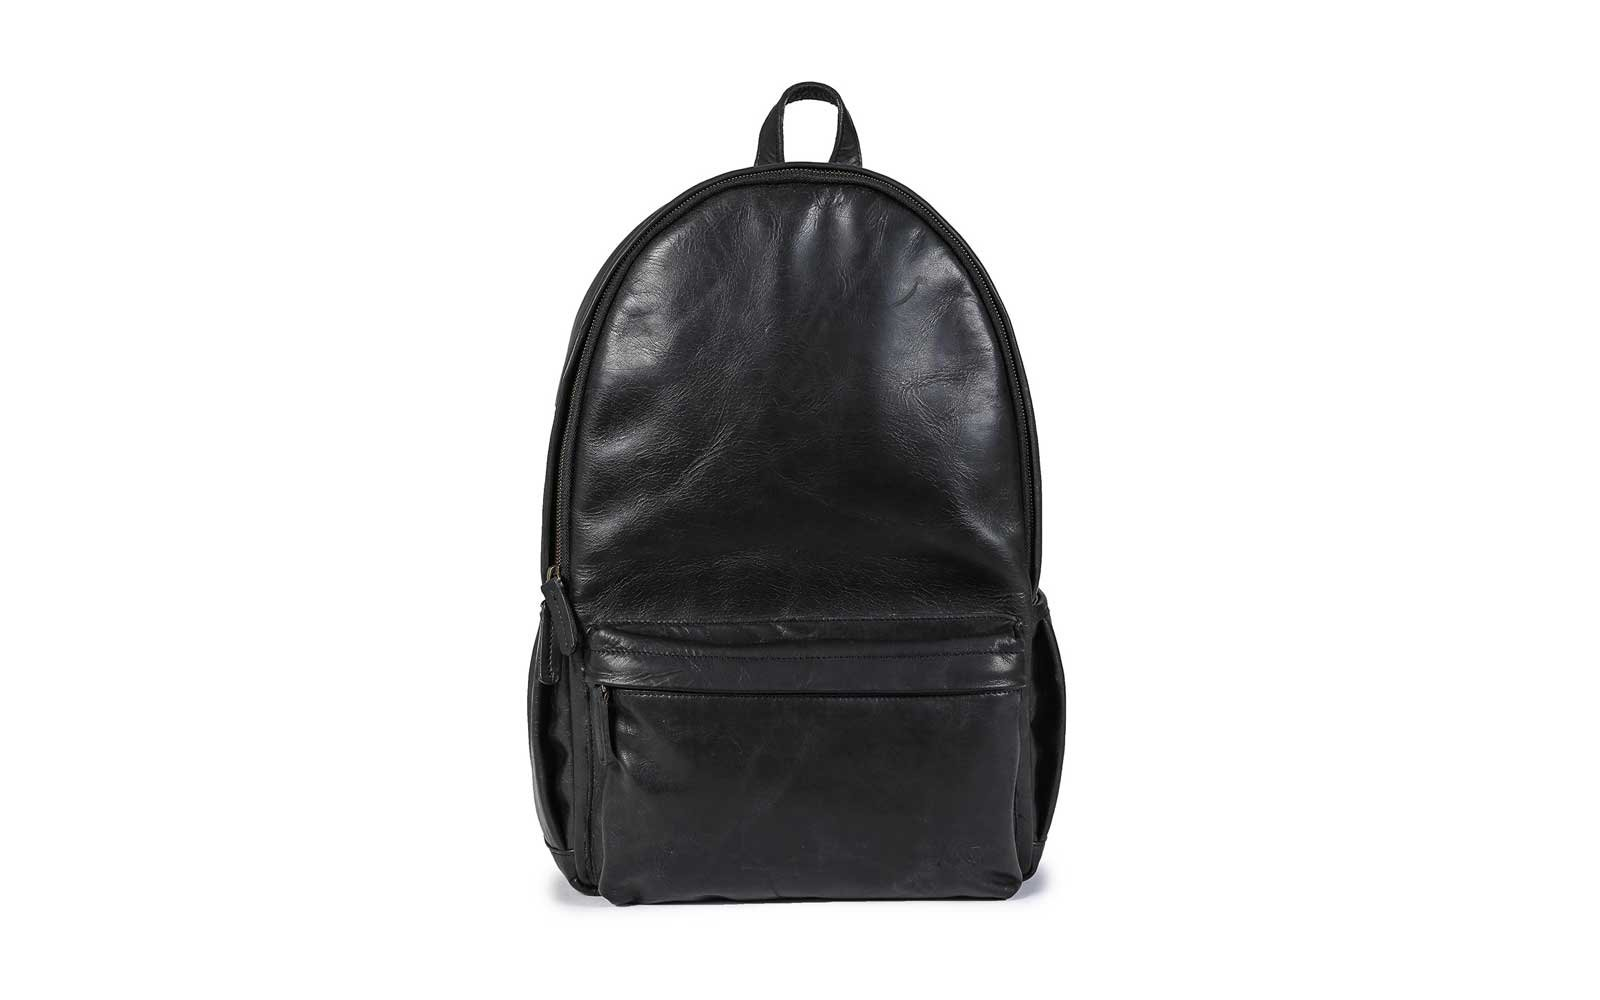 d86a54afa963 The Best Women s Leather Backpacks